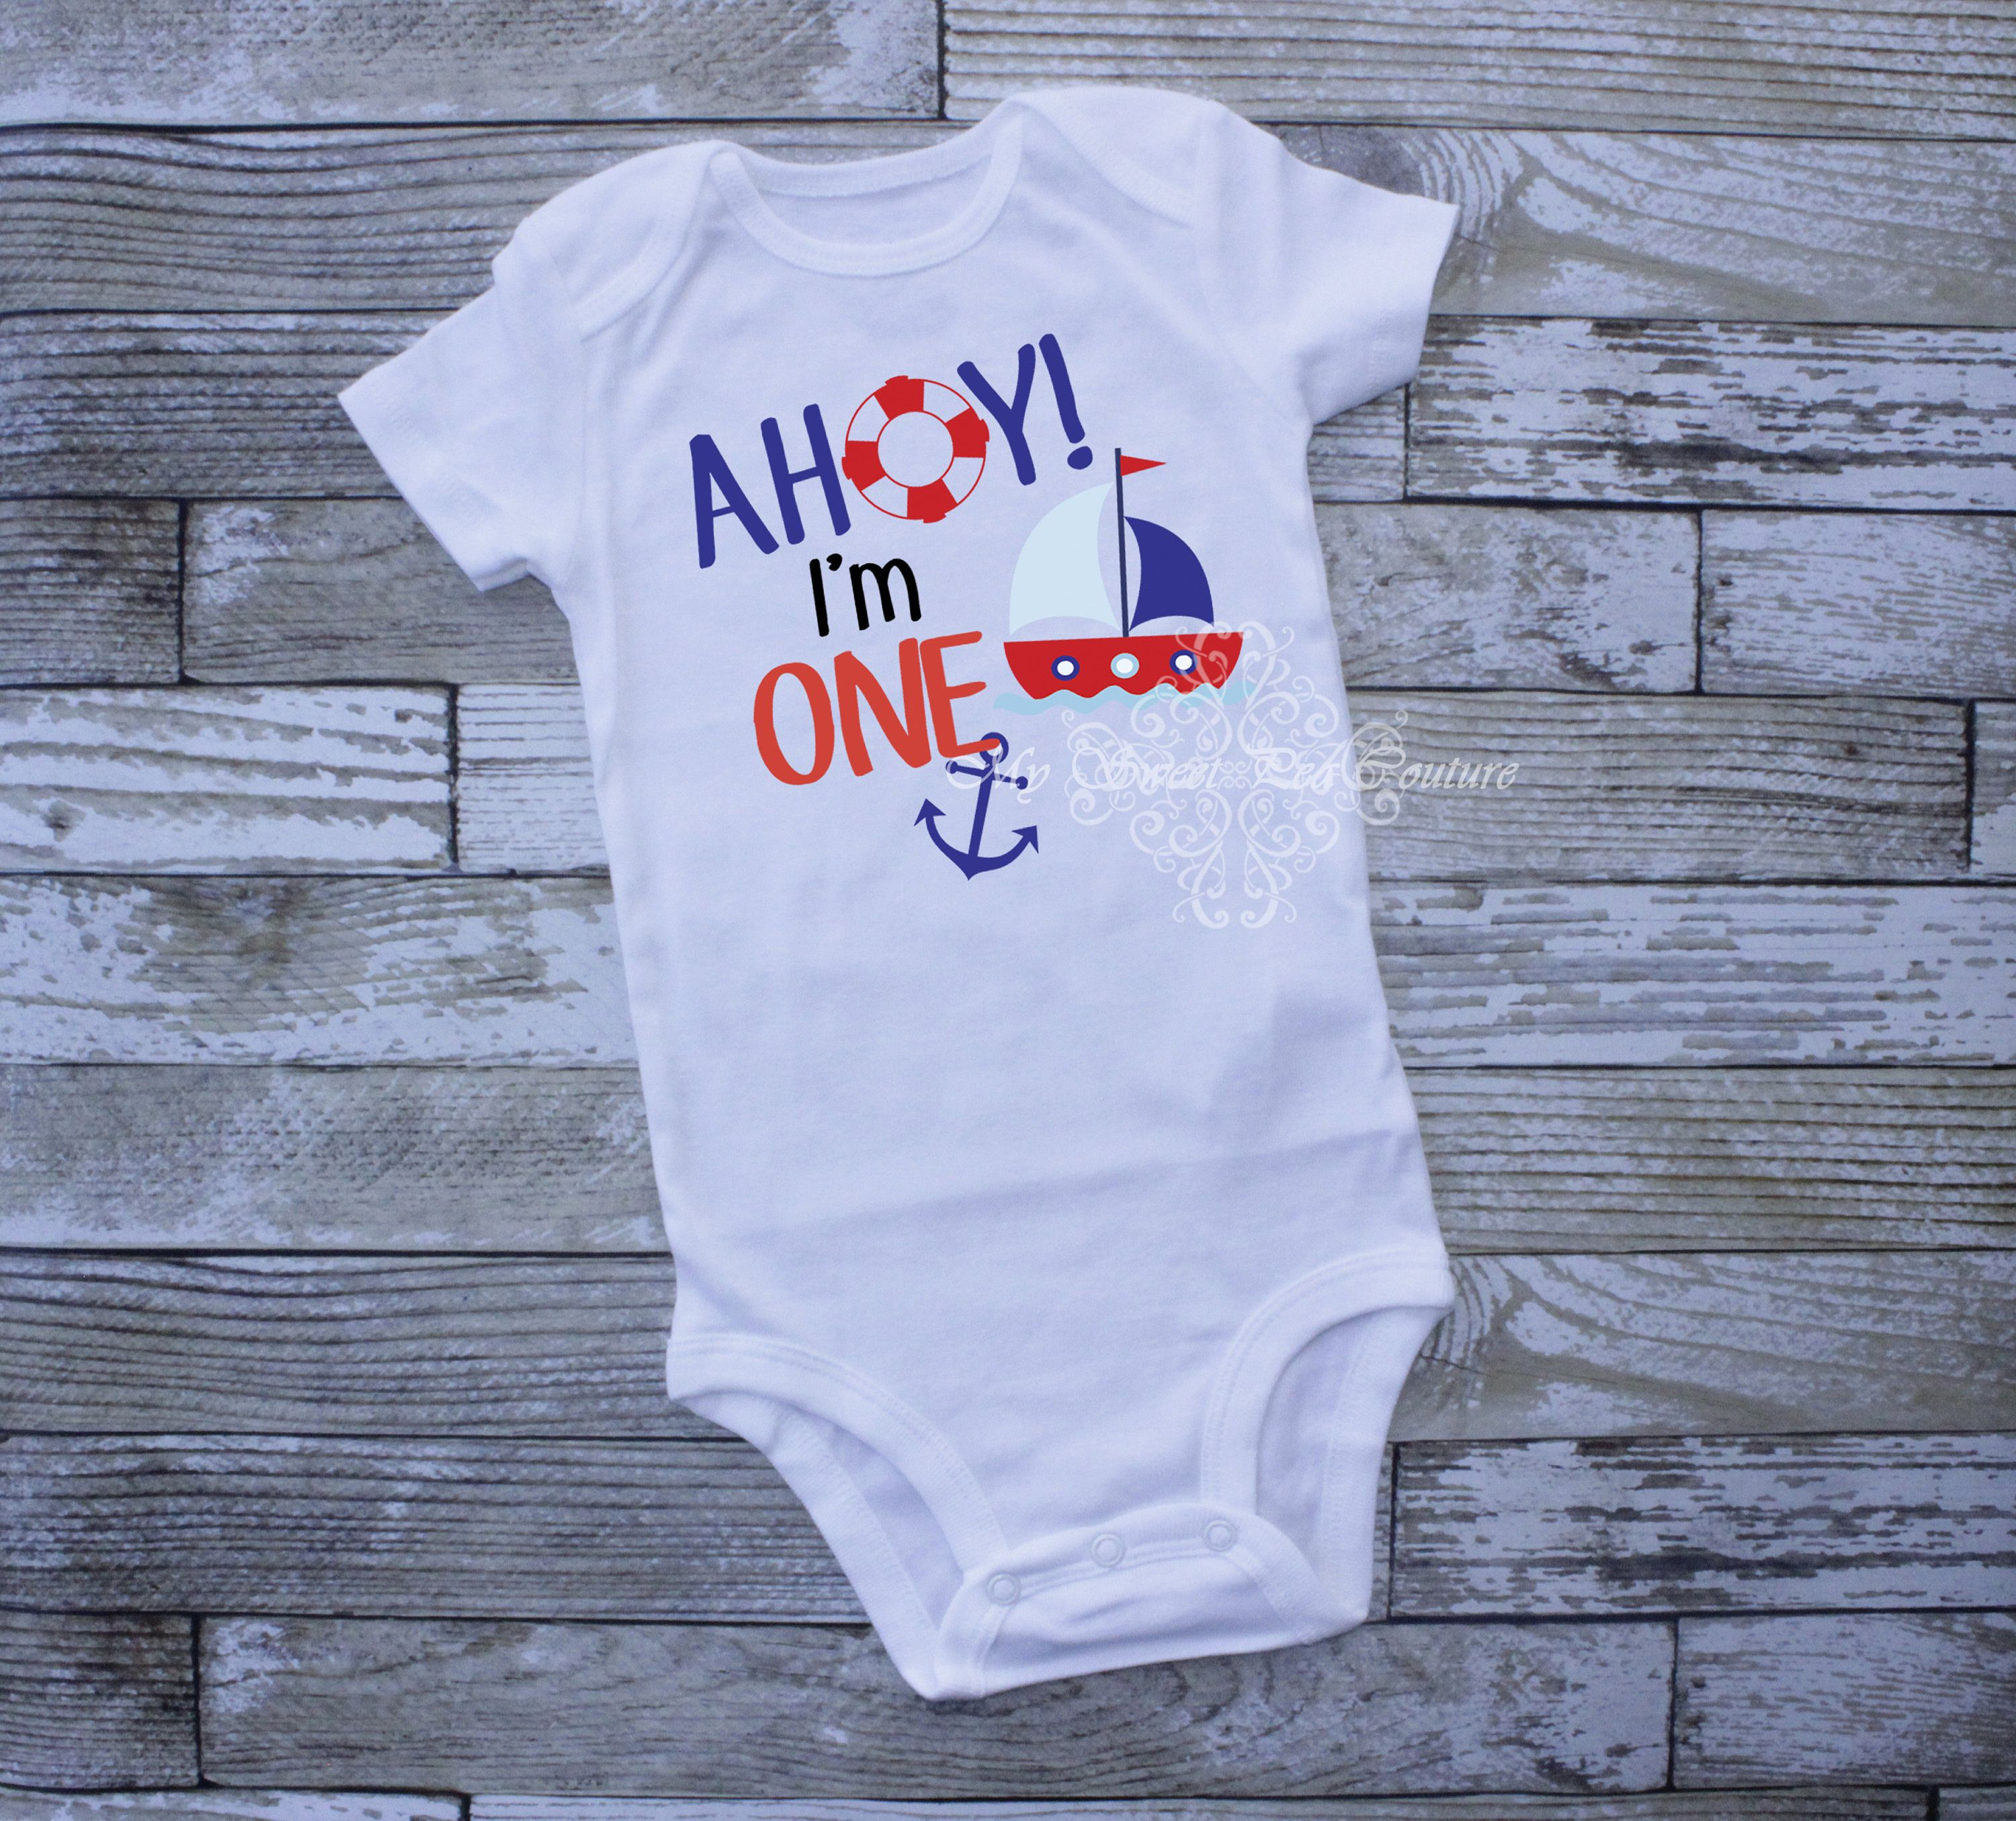 Nautical baby gift nautical baby baby boy clothes sail boat boy shirt Personalized baby outfit Baby Boy Nautical Sailboat Outfit